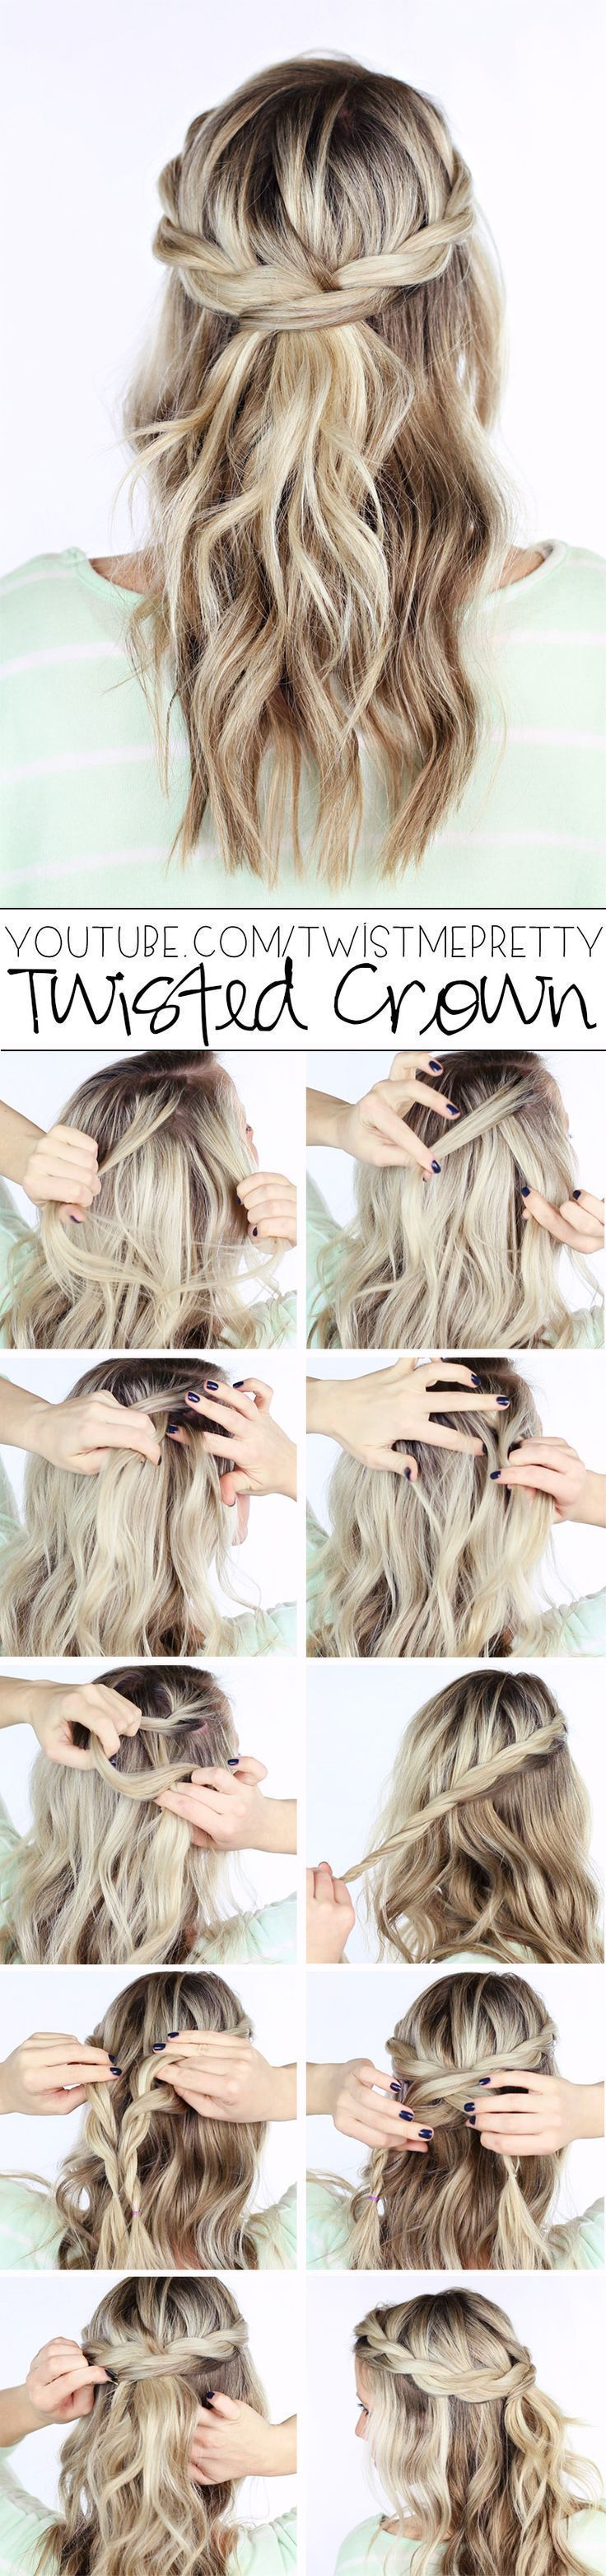 DIY Wedding Hairstyle - Twisted crown braid half up half down hairstyle - wedding hair